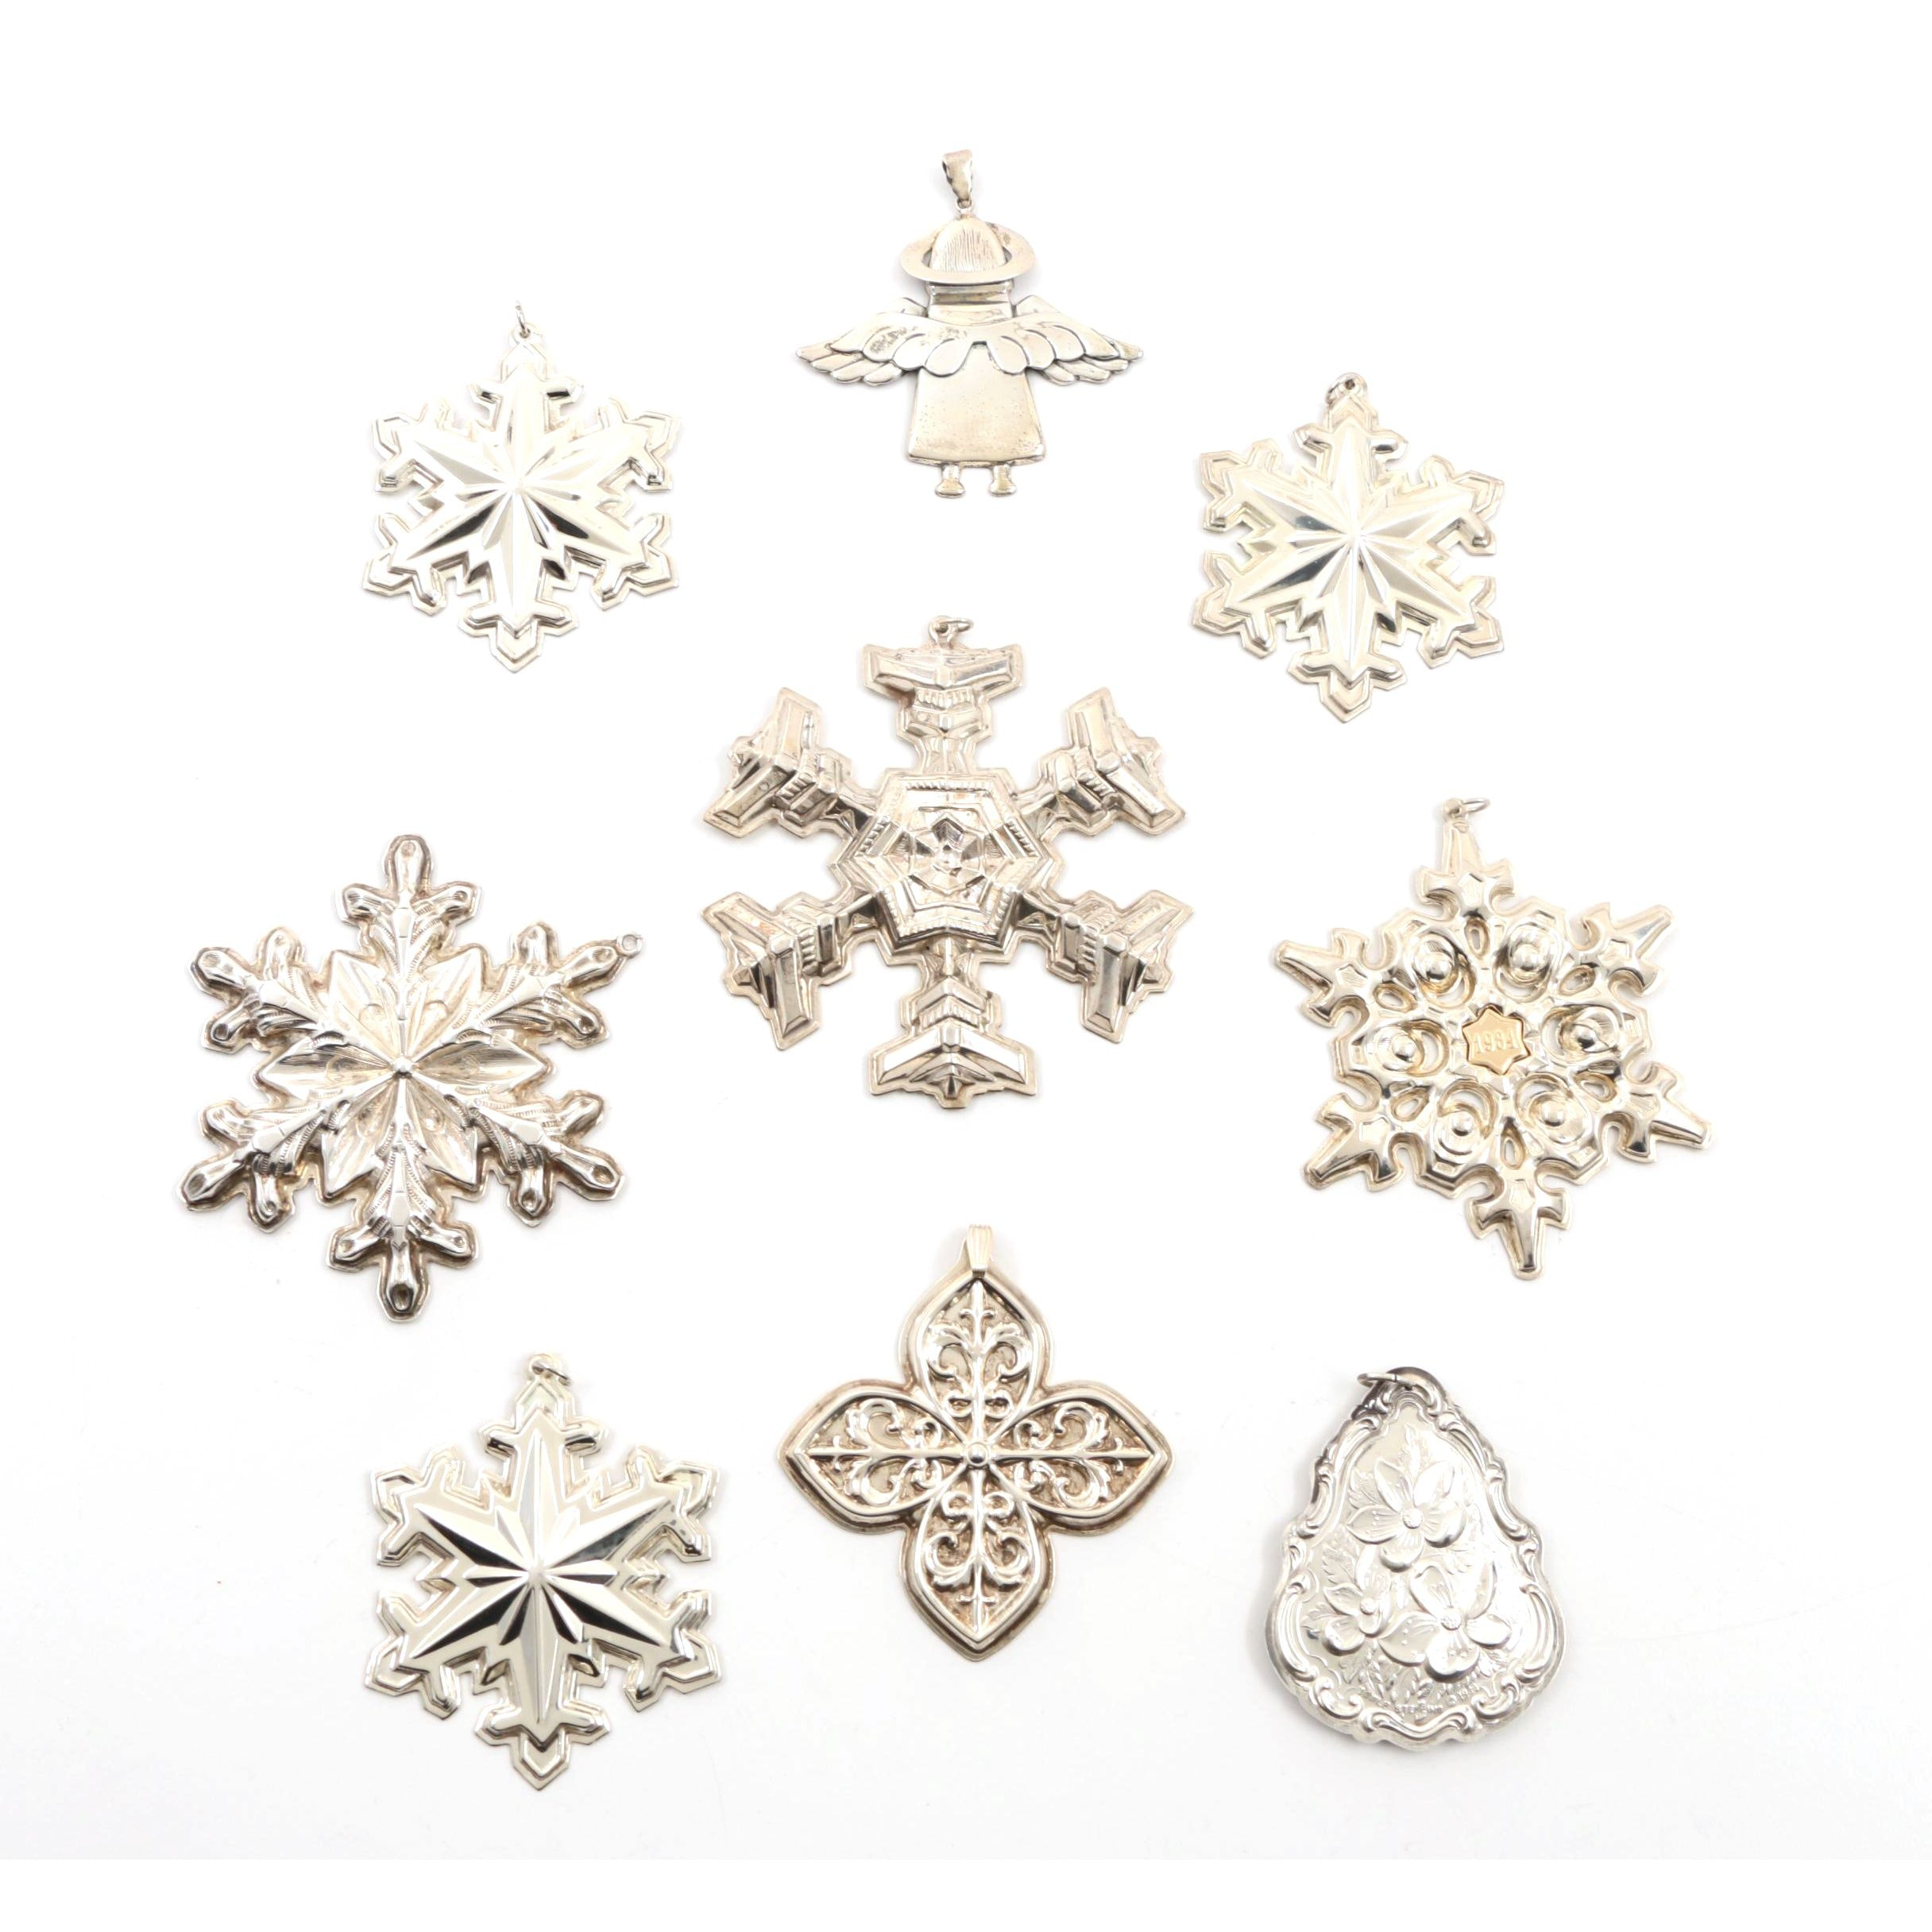 1977 Gorham Sterling Snowflake and Other Sterling Silver Holiday Ornaments